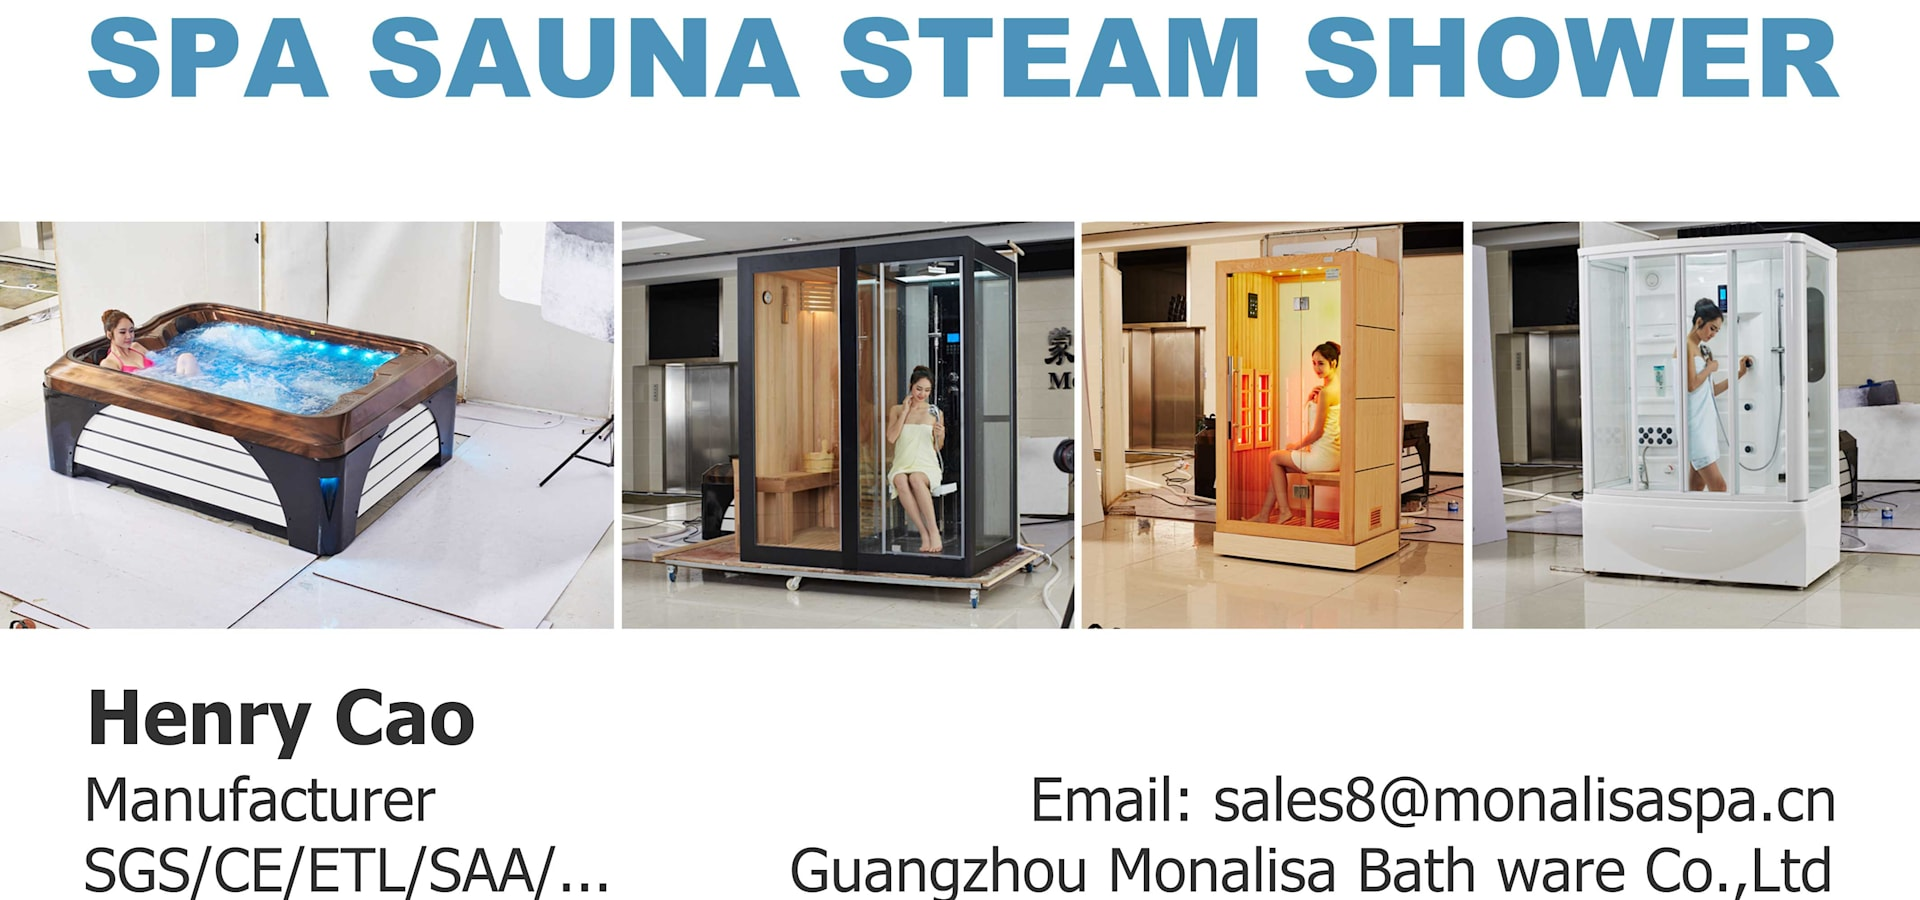 SpaSaunaSteamShower